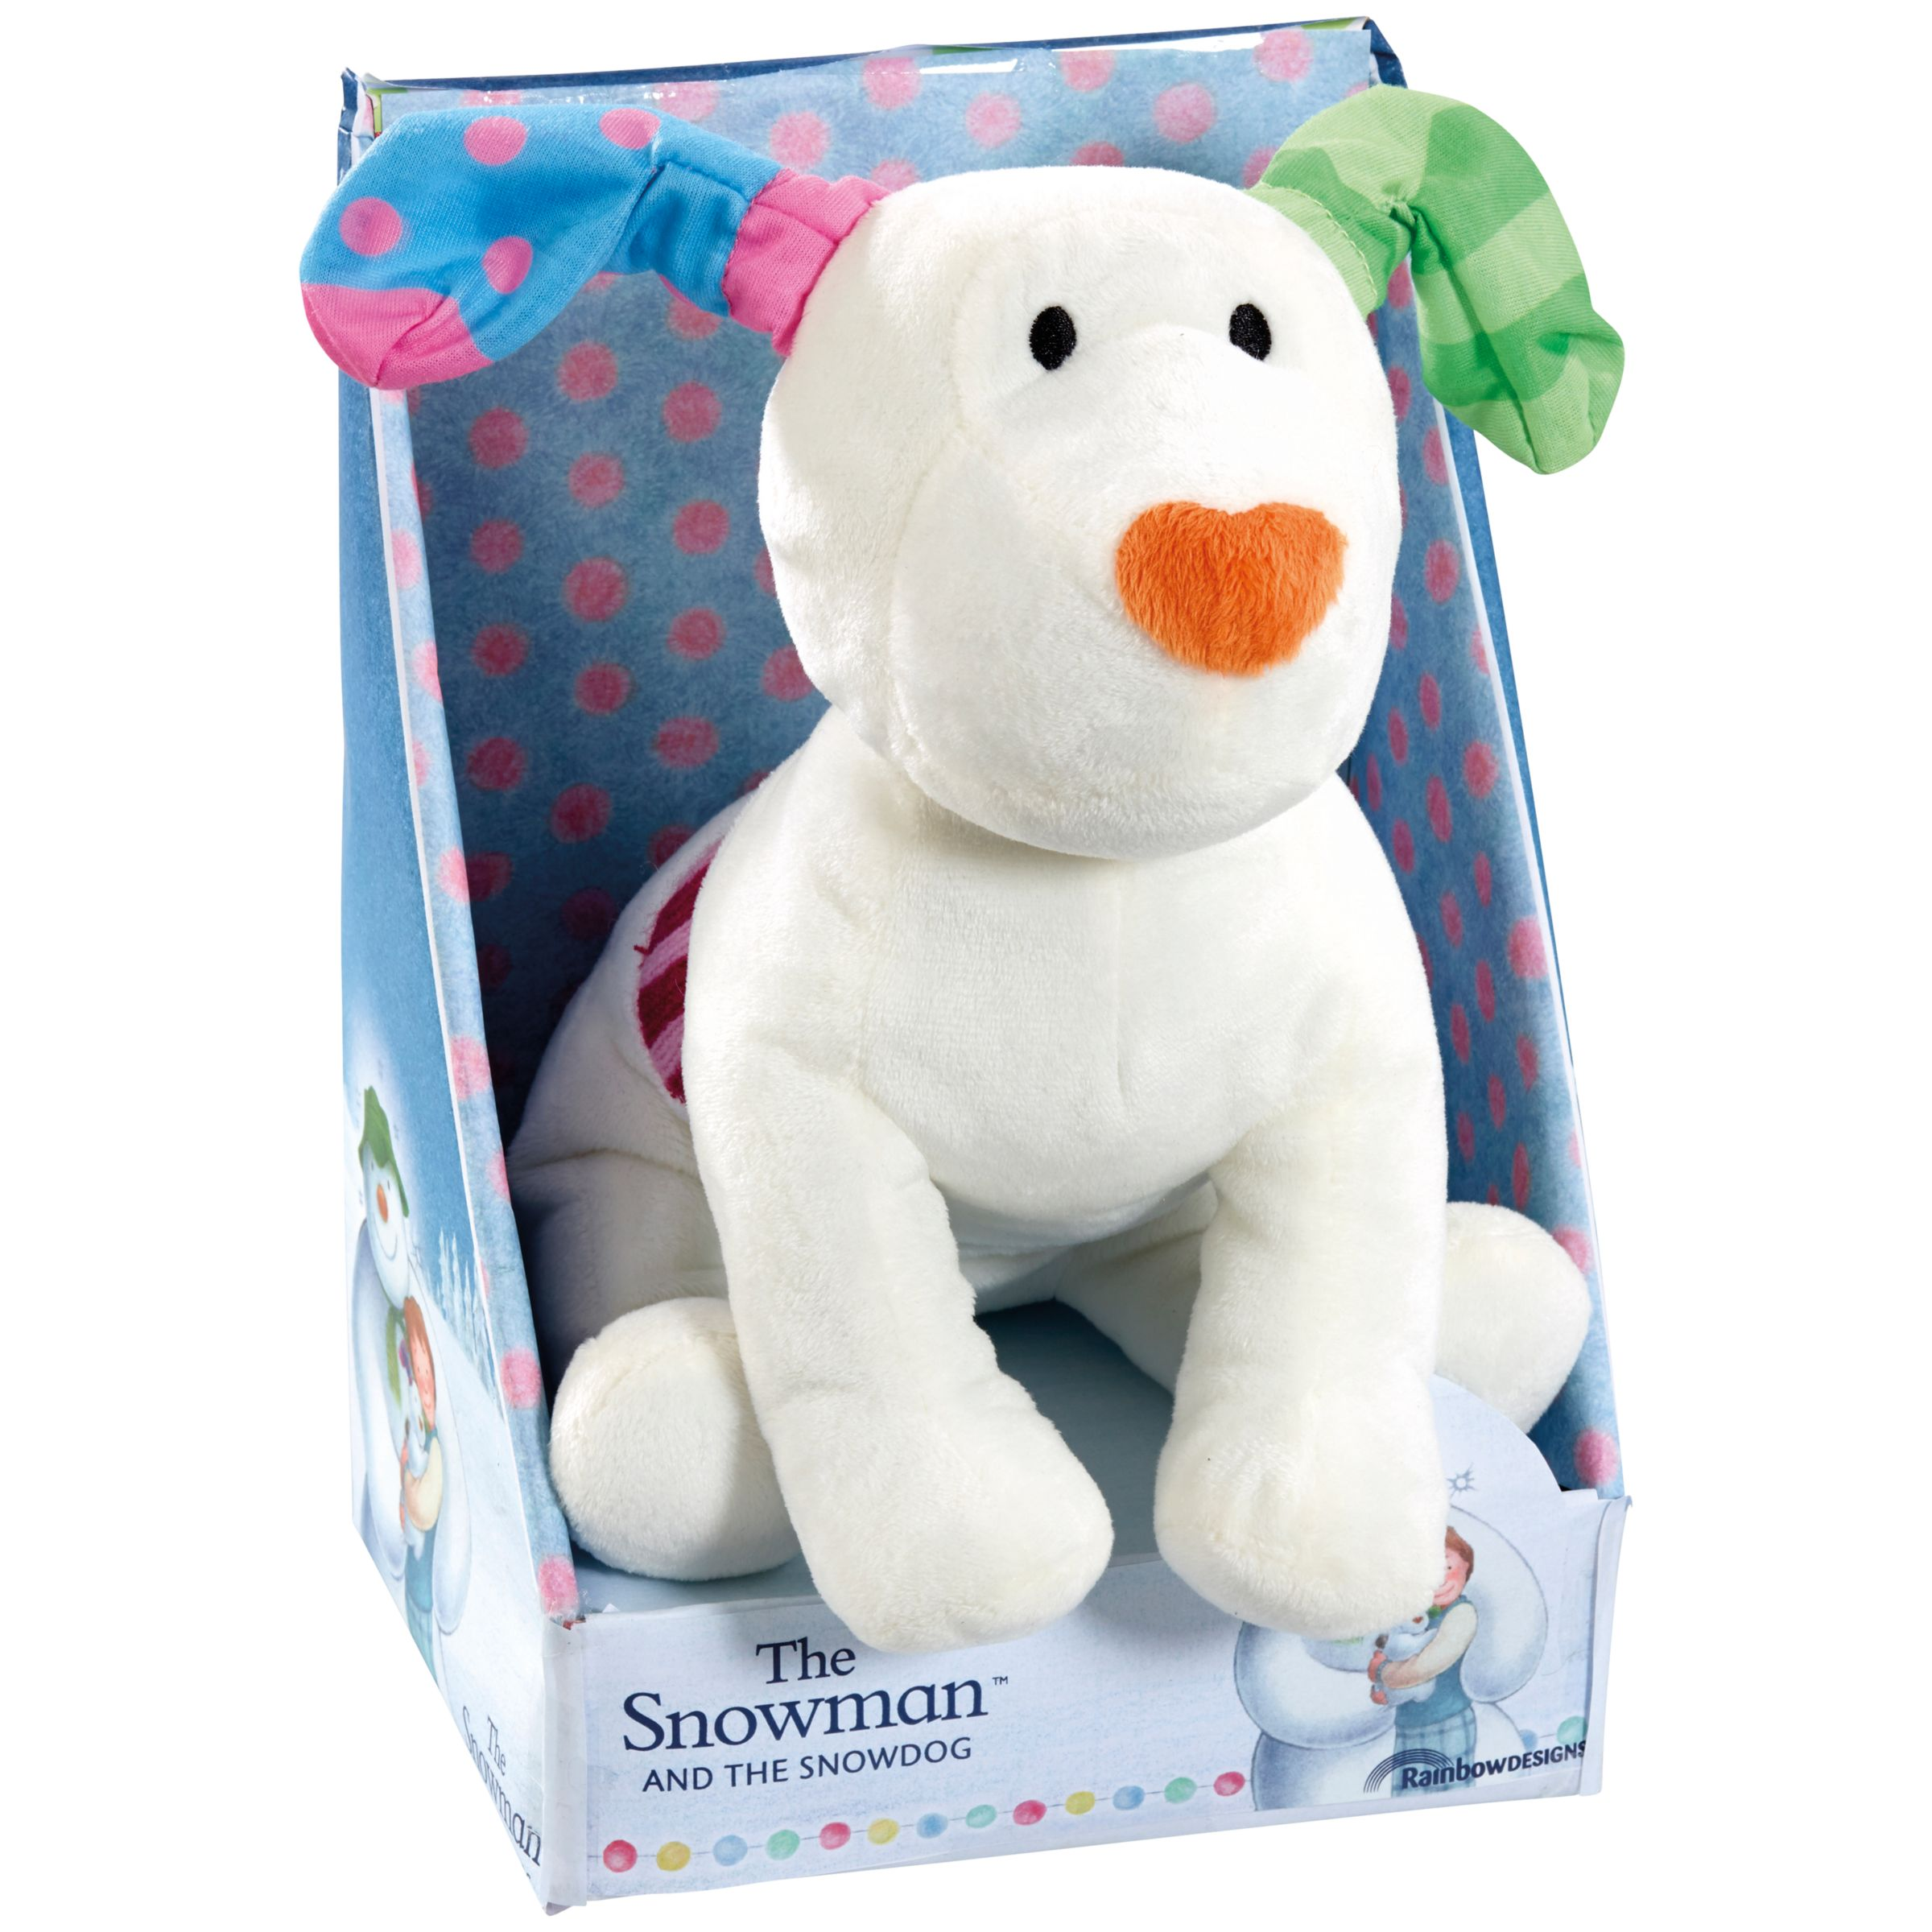 The Snowman The Snowman and The Snowdog Soft Toy